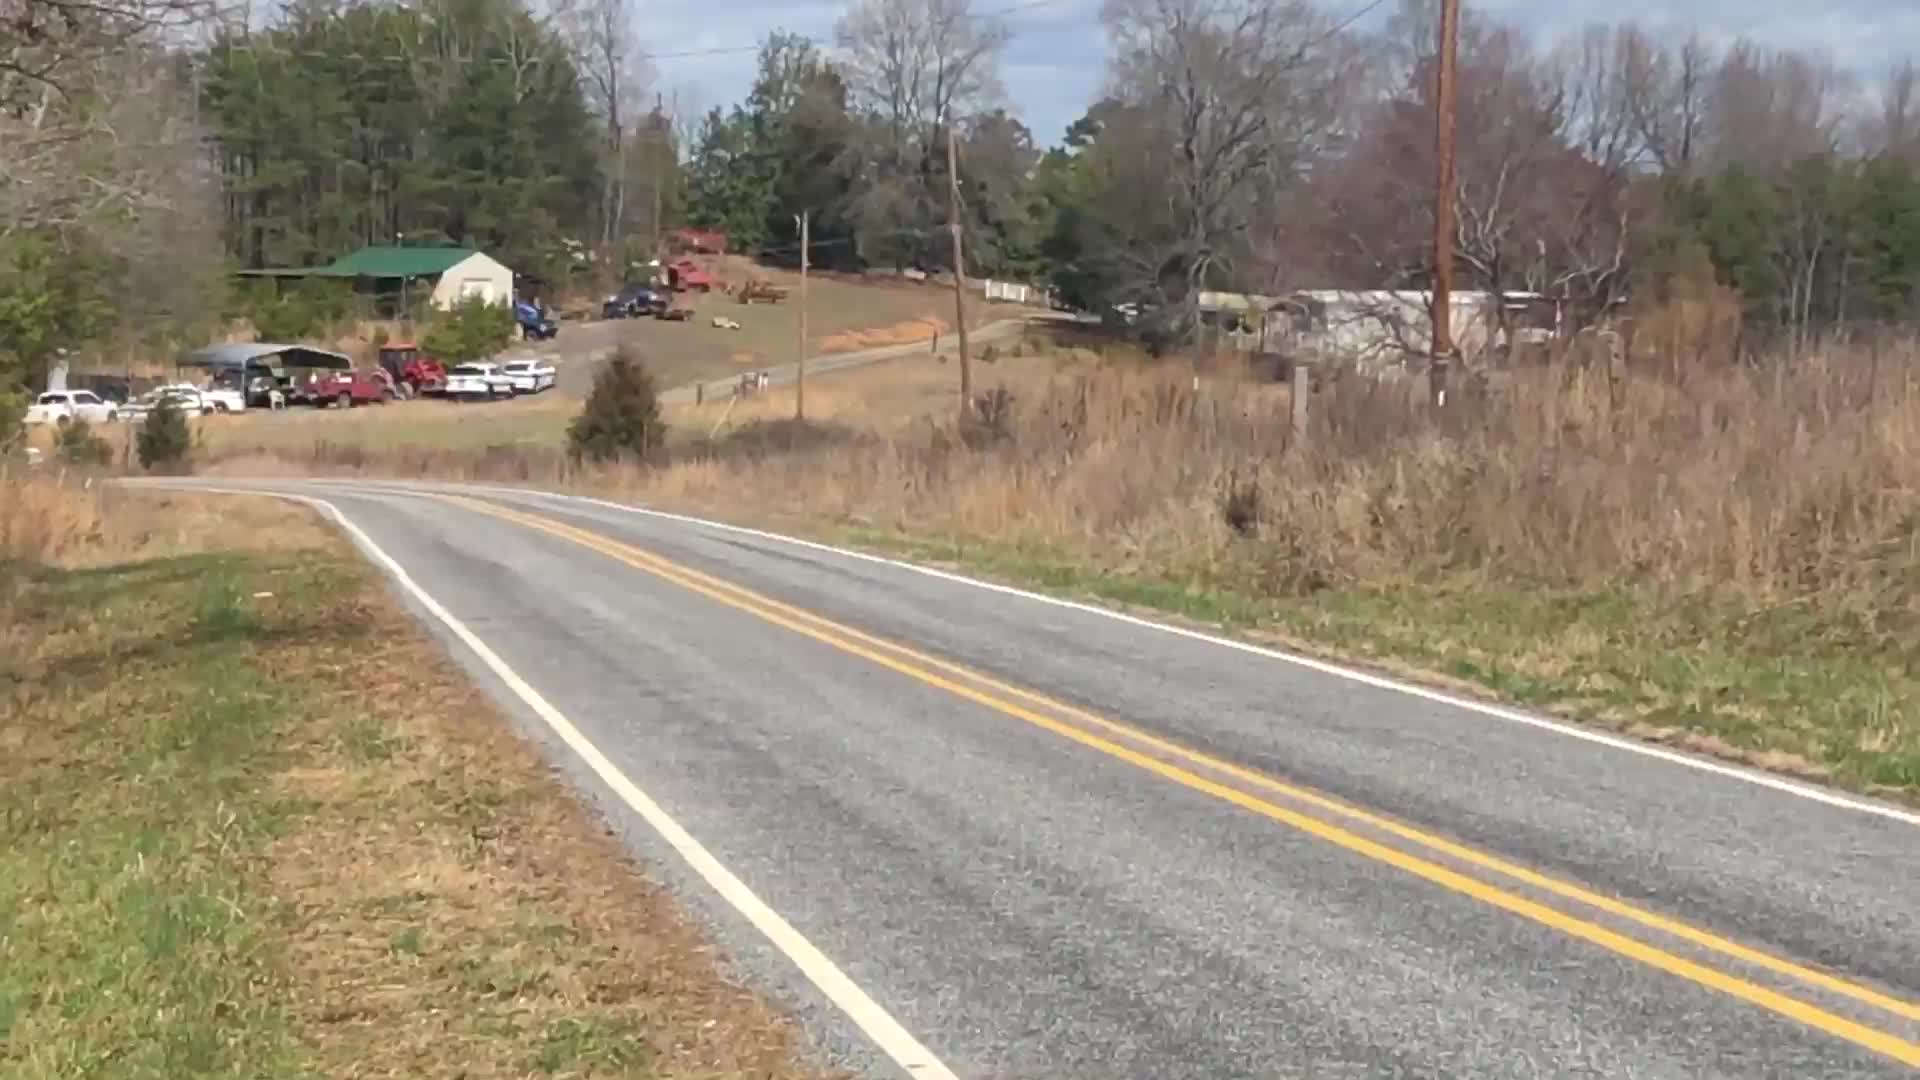 A man was barricaded inside a Rockingham County home after he allegedly pointed a firearm at deputies, according to the sheriff's office.